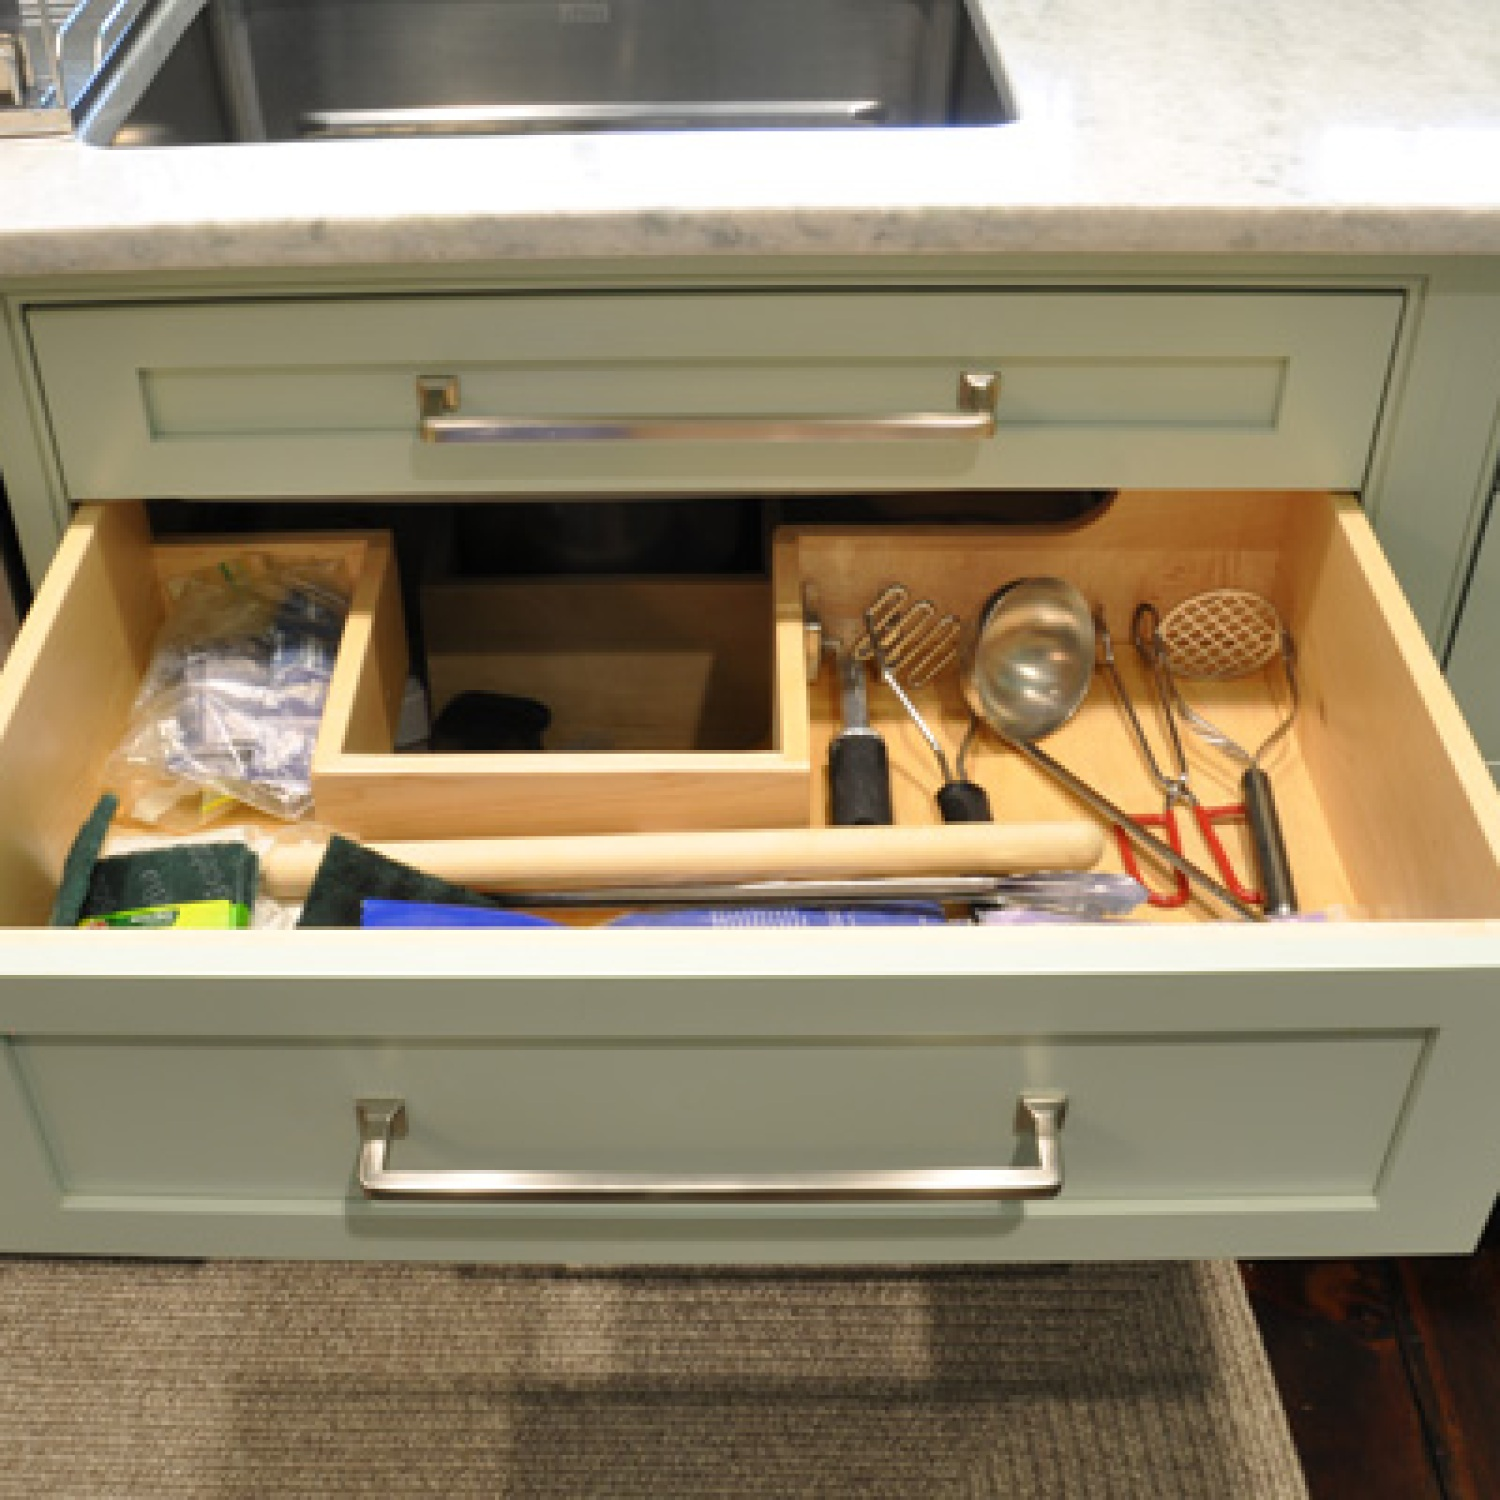 U-Shaped Drawer in Kitchen | Under-Sink Organizer Ideas